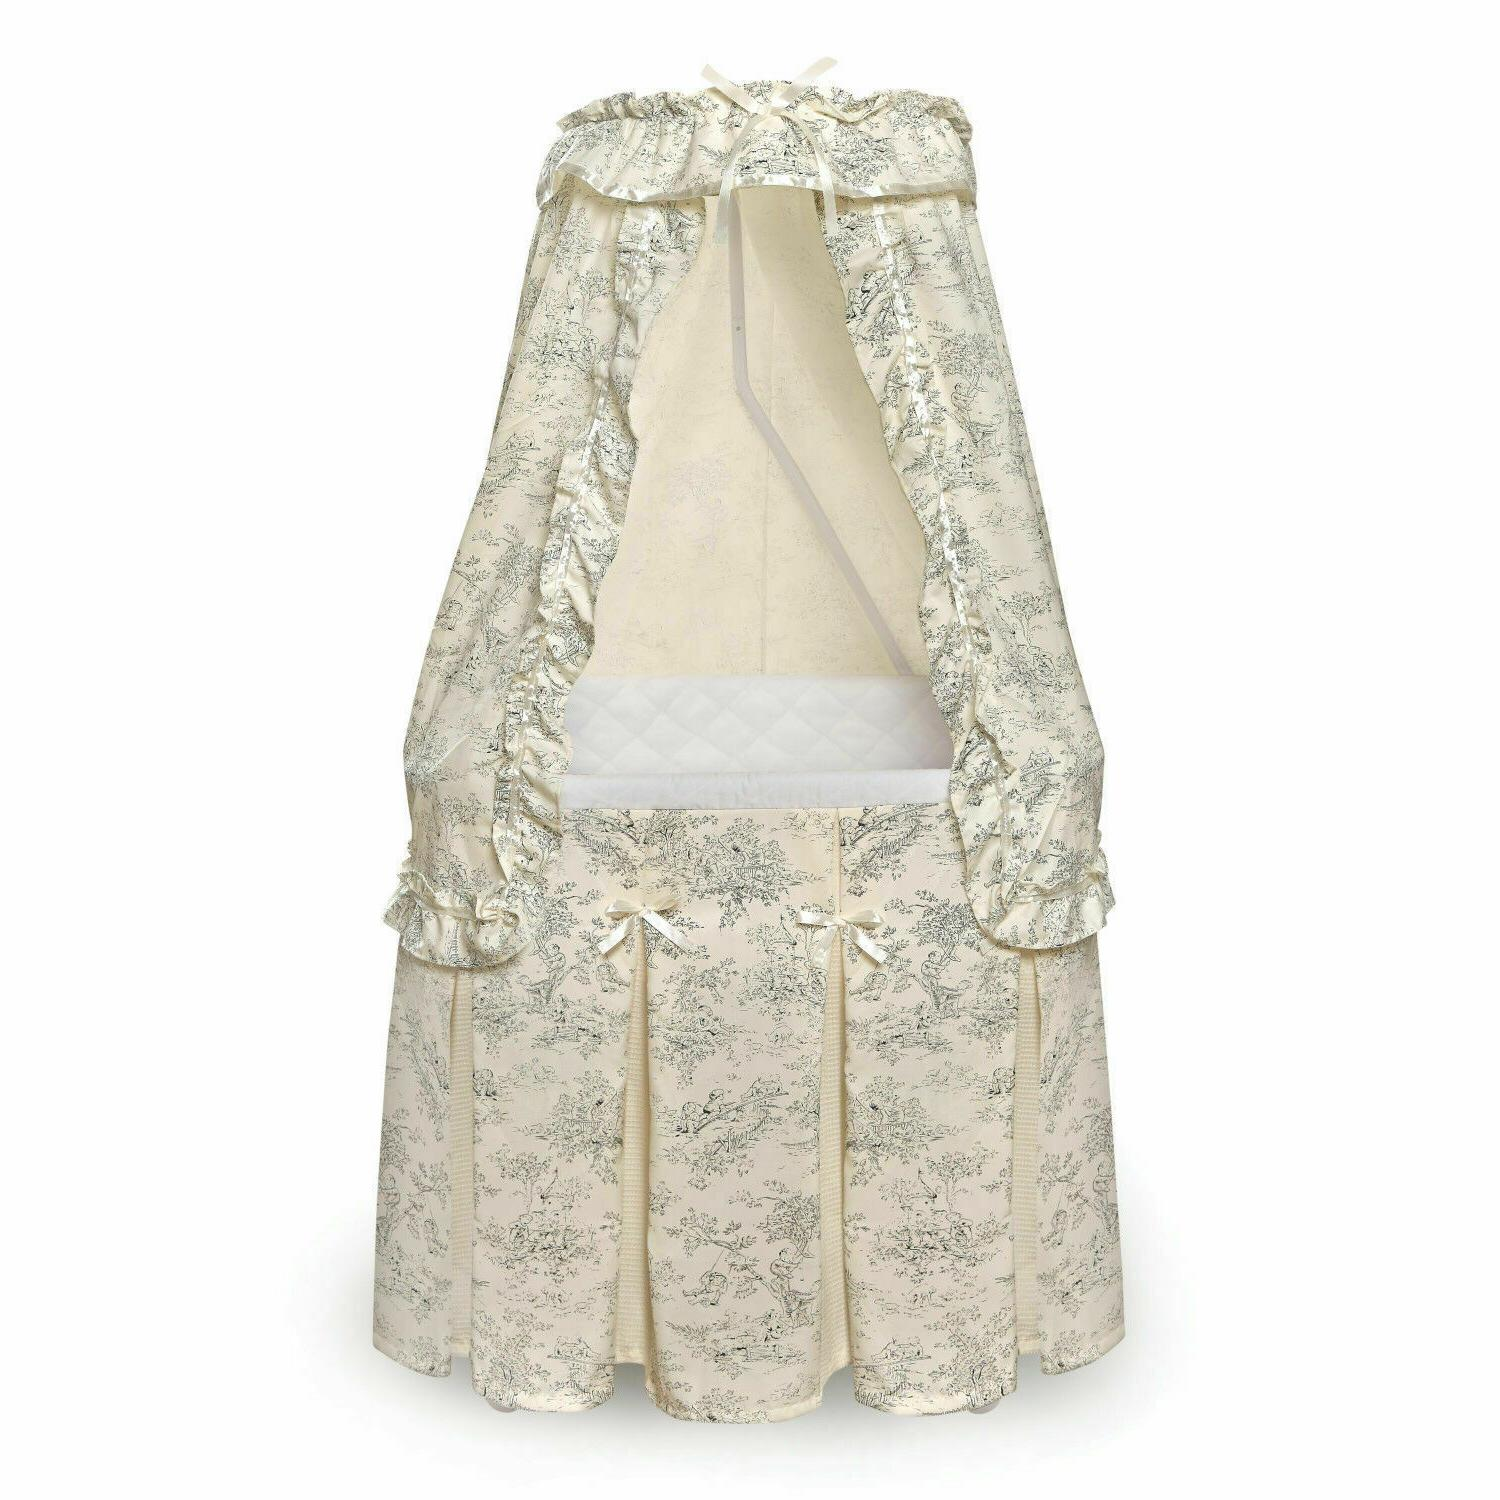 Majesty Baby Infant Bassinet w/Canopy & Black Toile Bedding